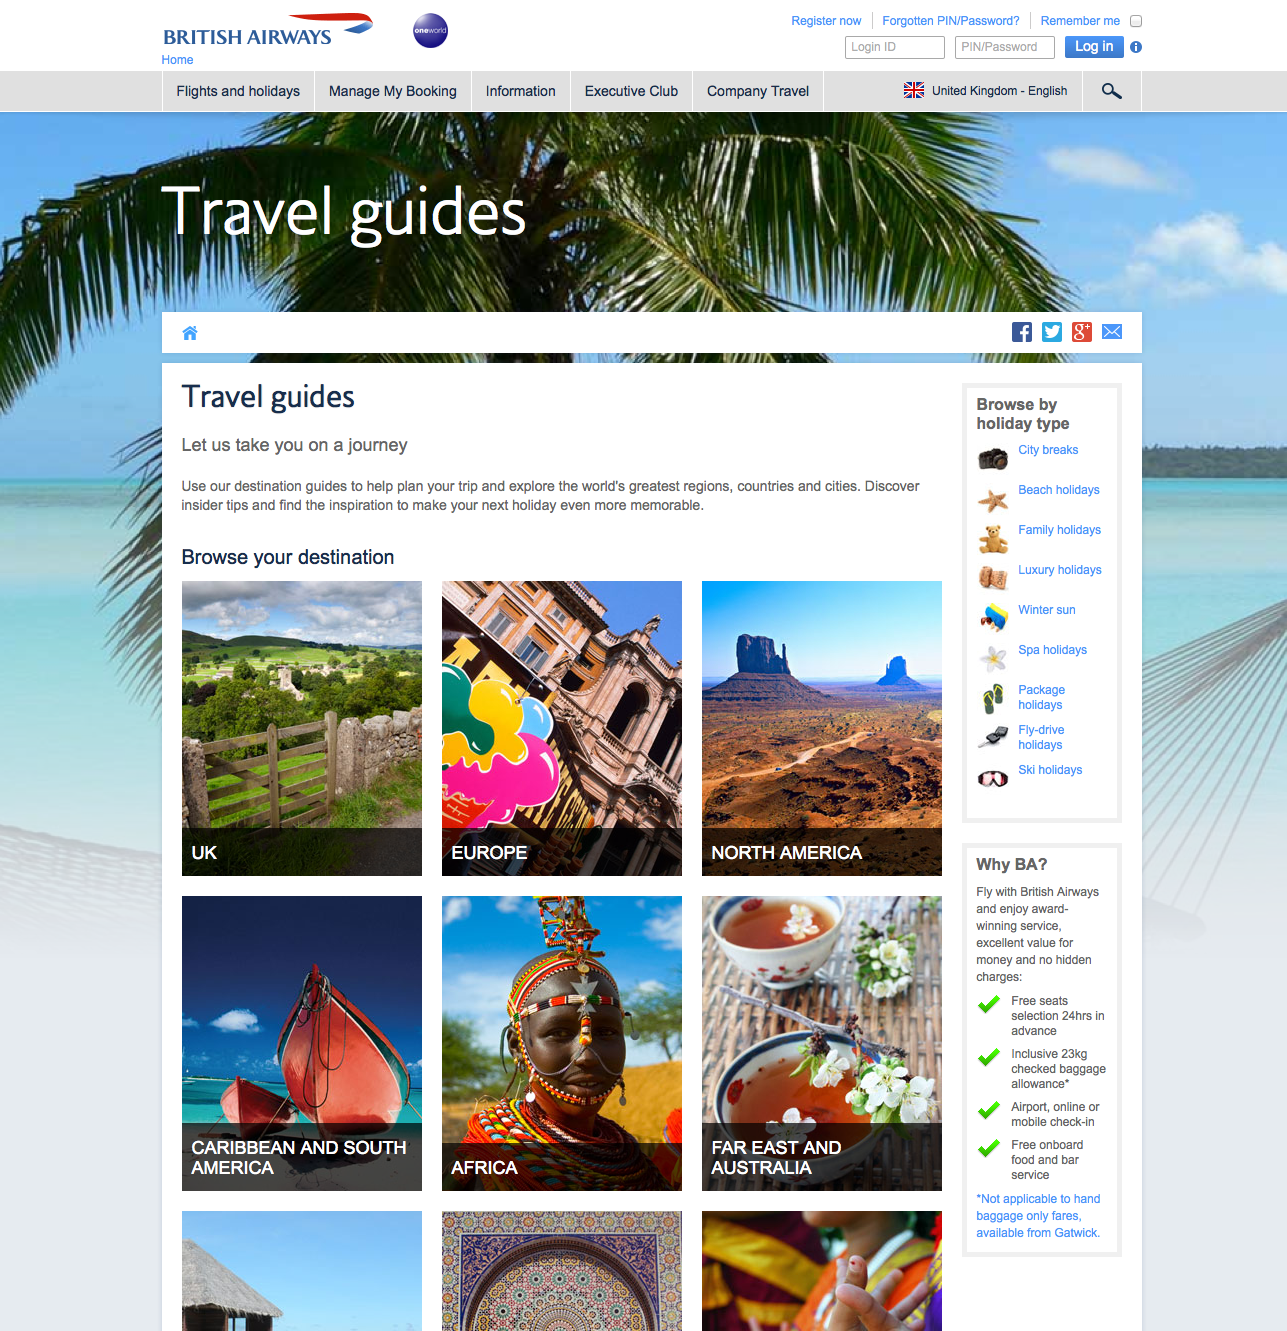 Online travel research